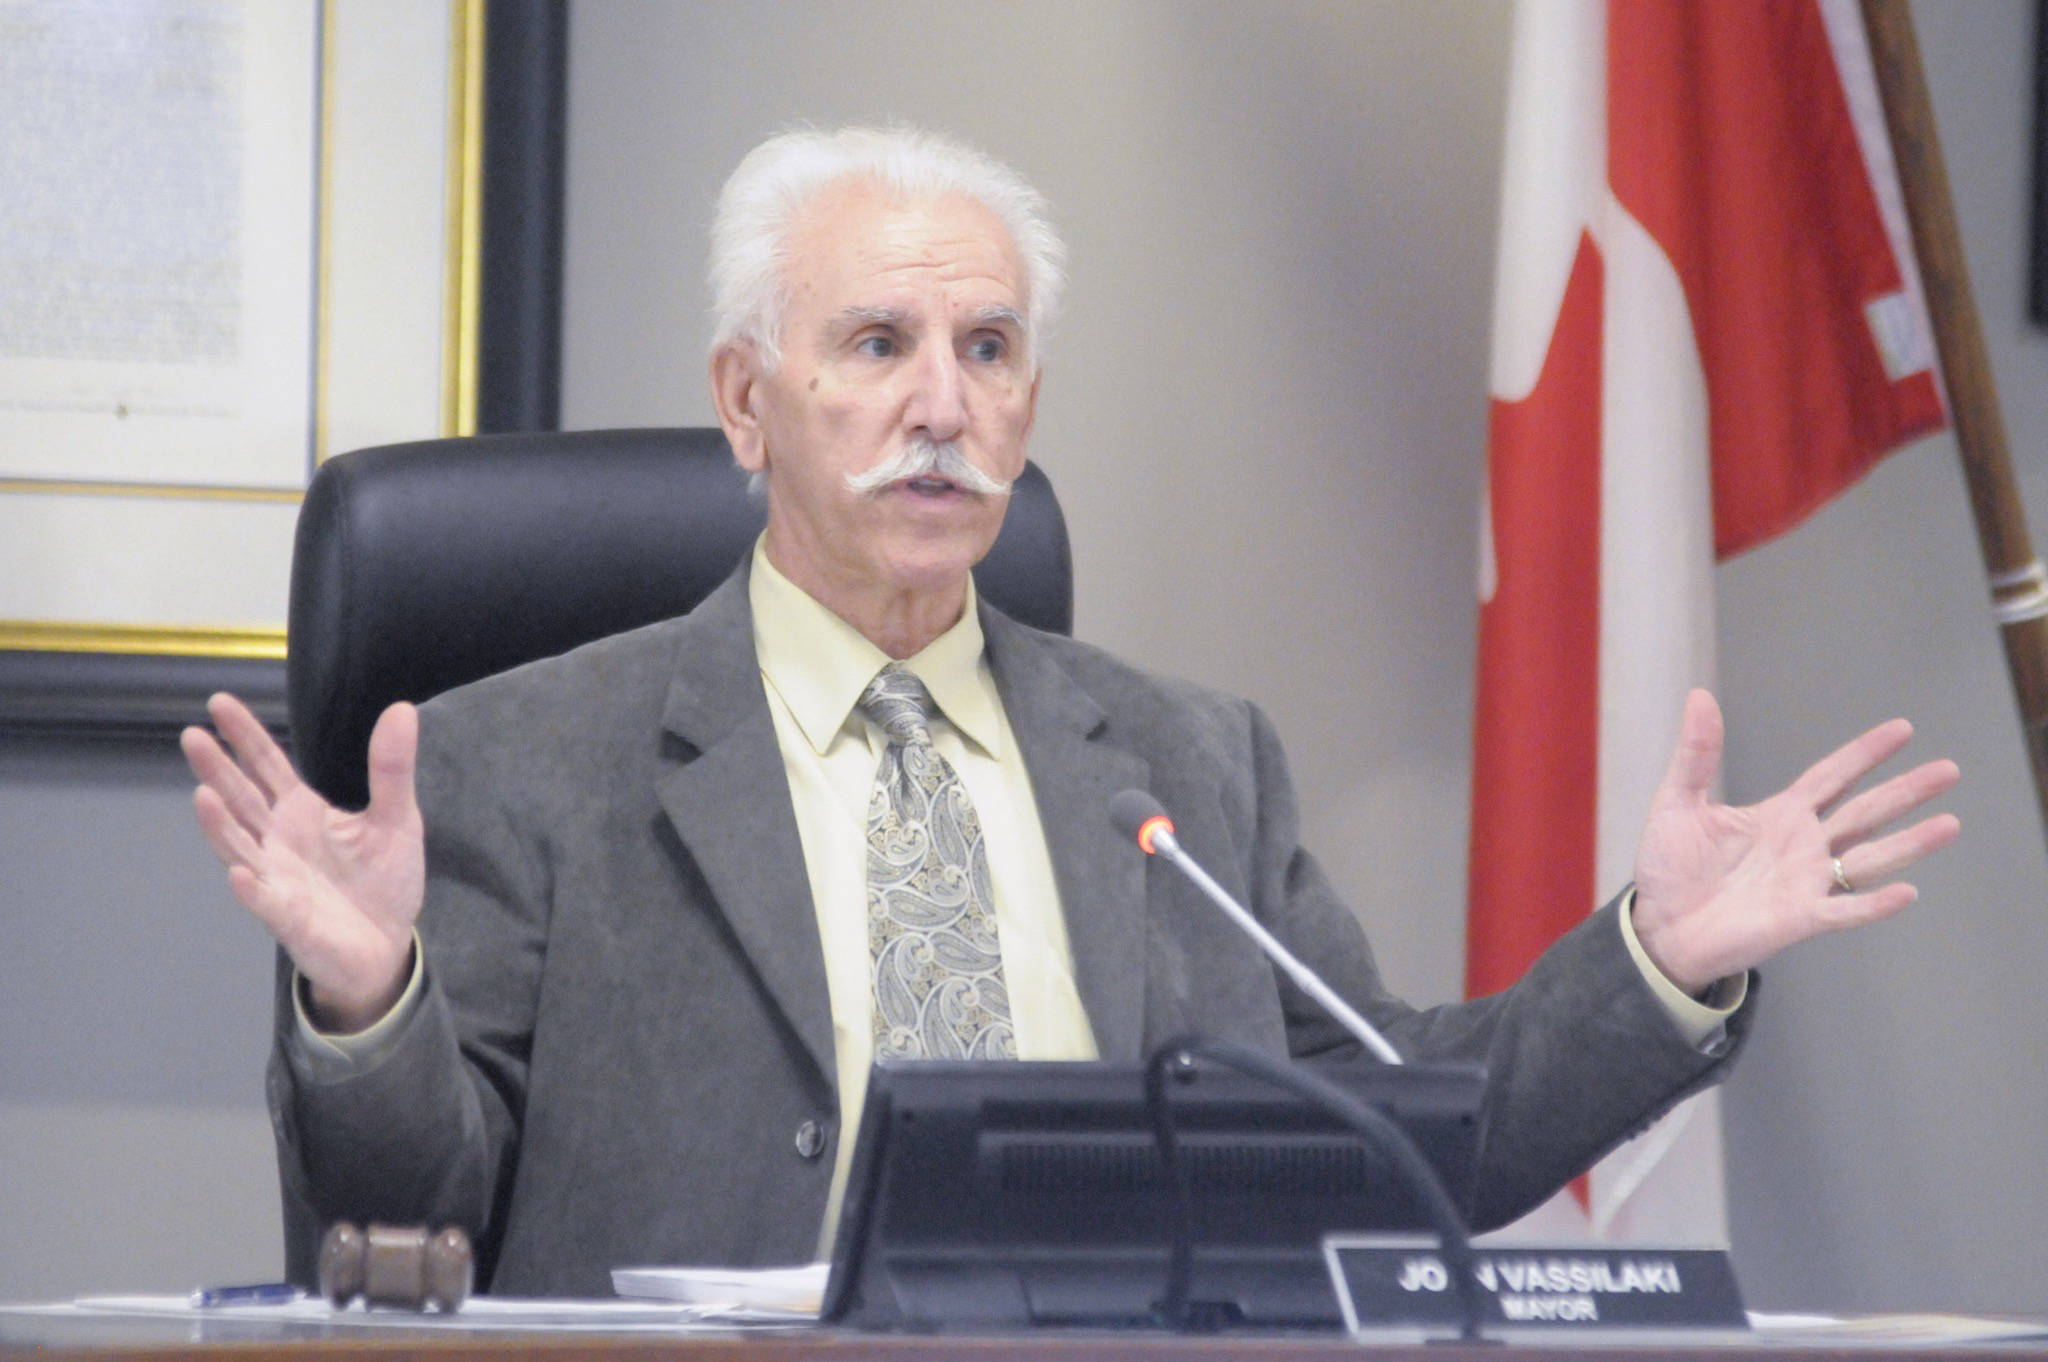 Penticton Mayor John Vassilaki said they are waiting for an official letter from the province on the Victory Church shelter before seeking legal action. (Western News file photo)